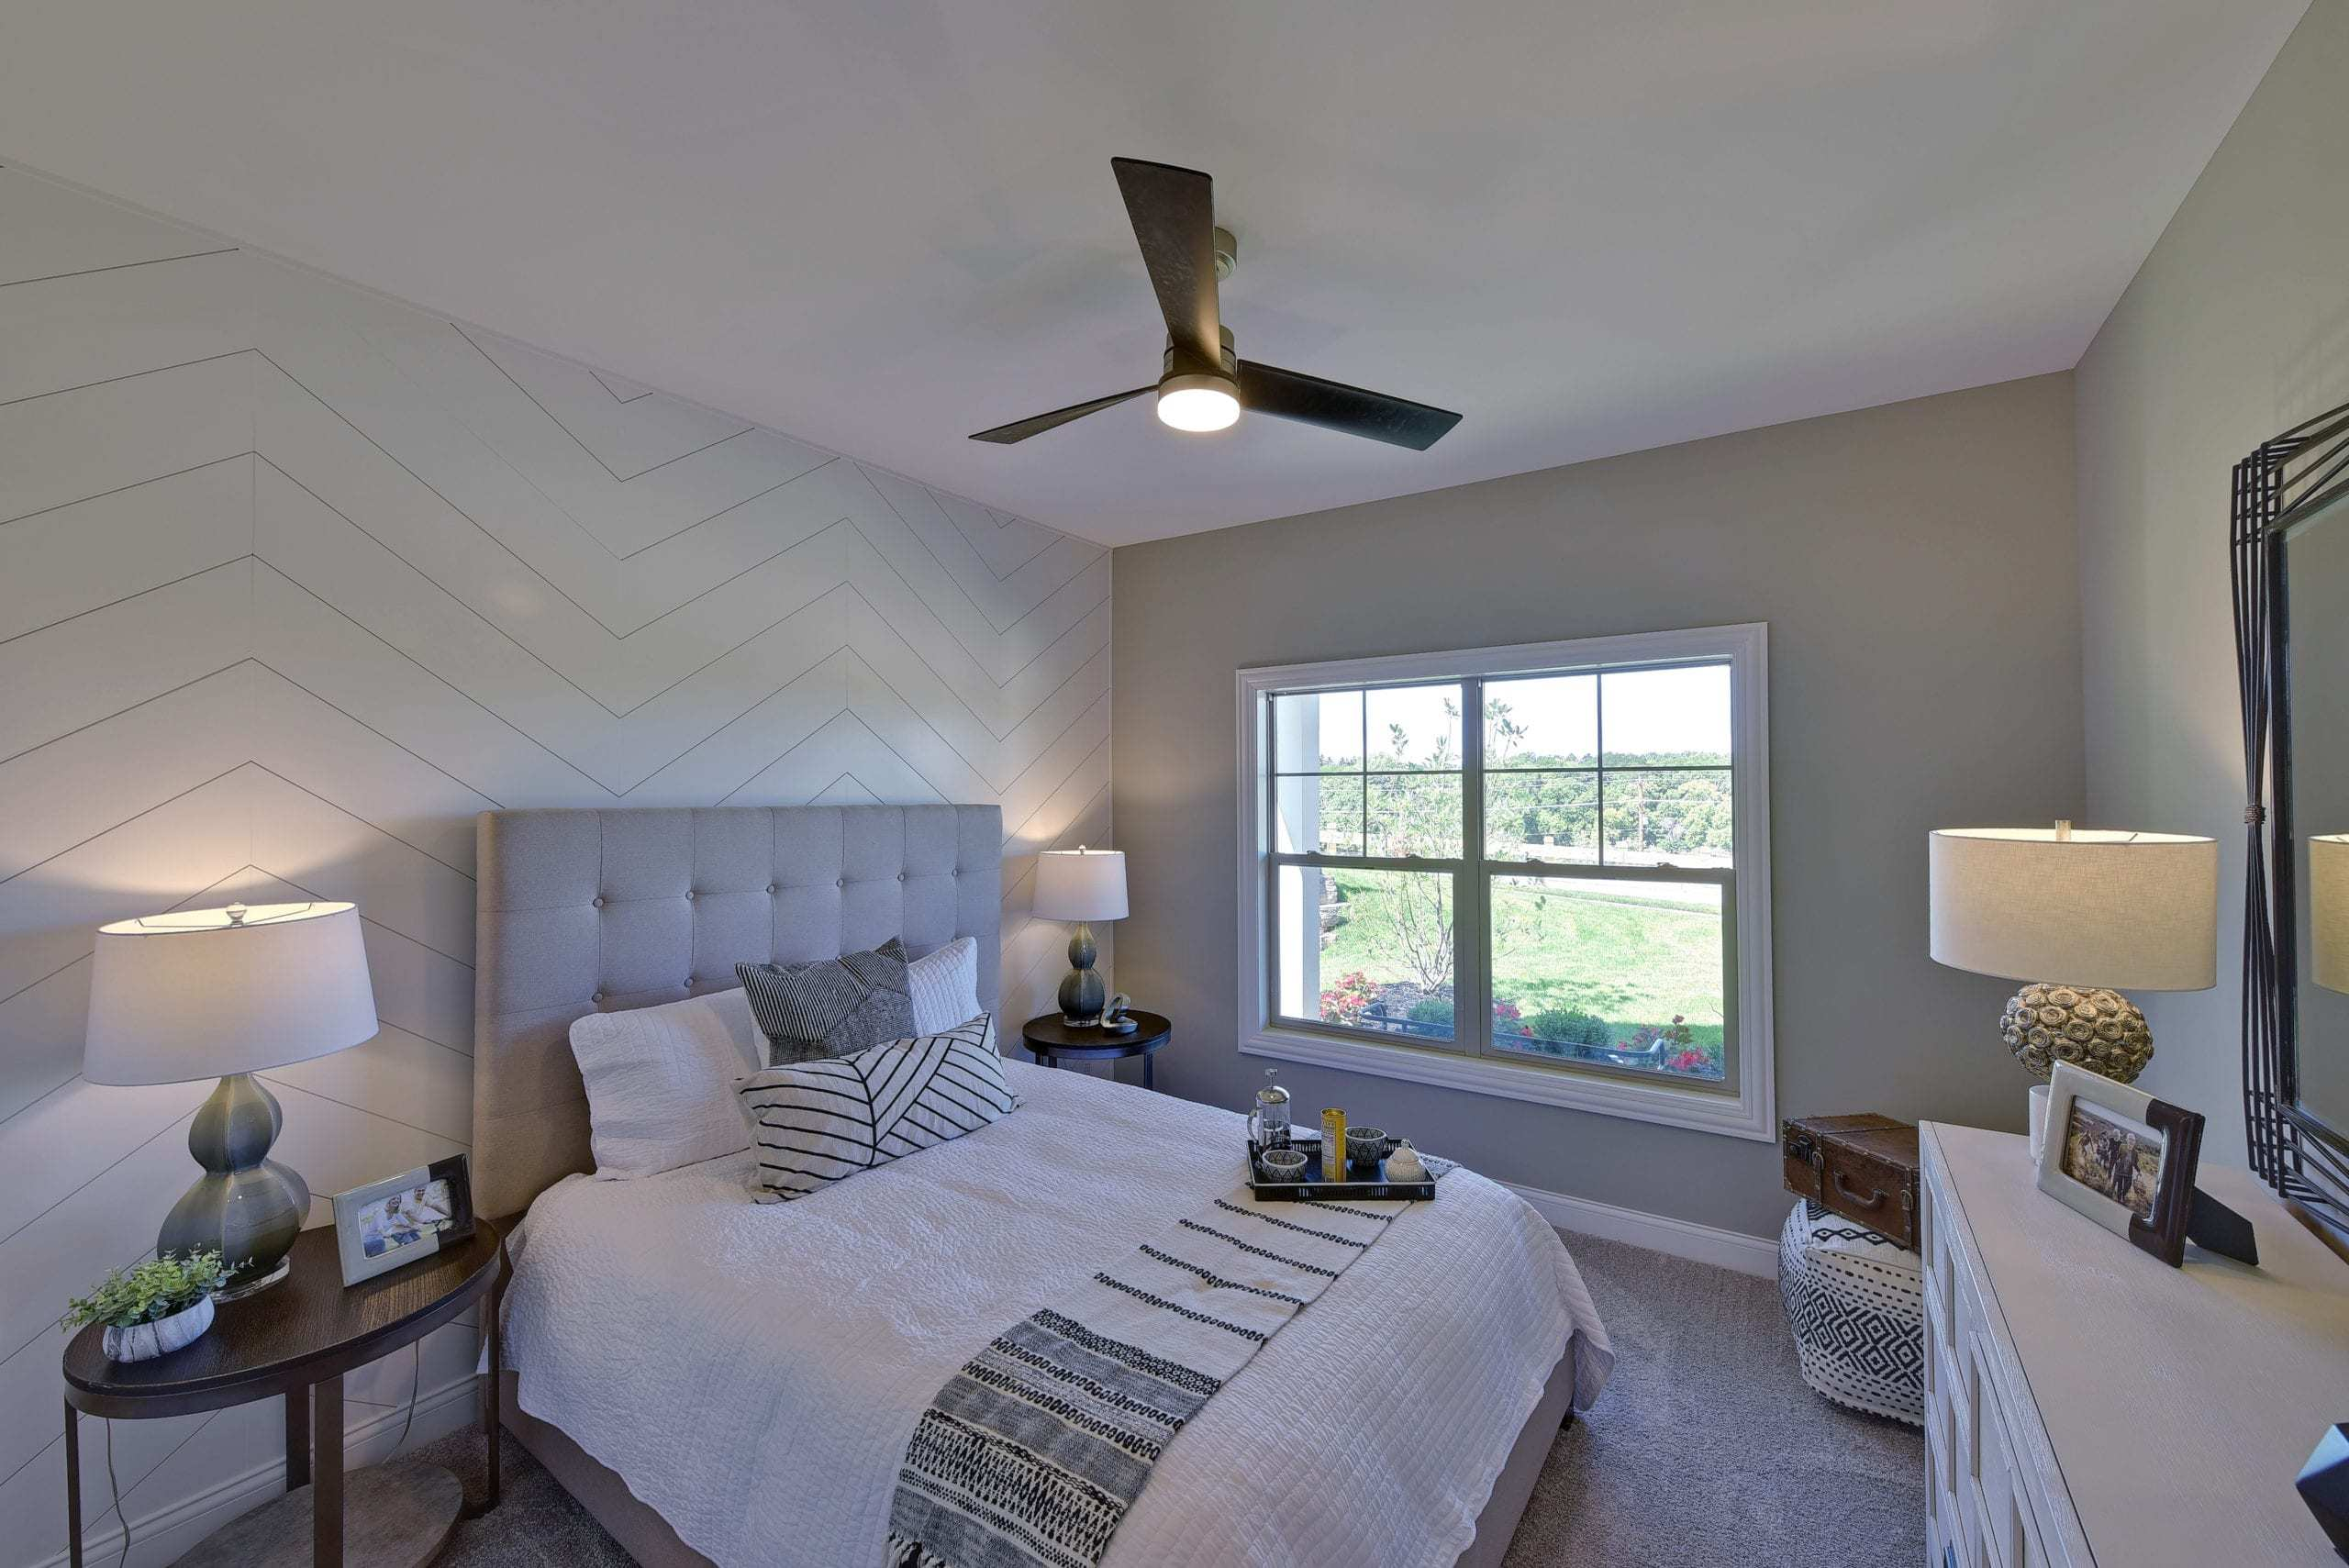 Bedroom featured in the Promenade III By Epcon Communities in Columbus, OH